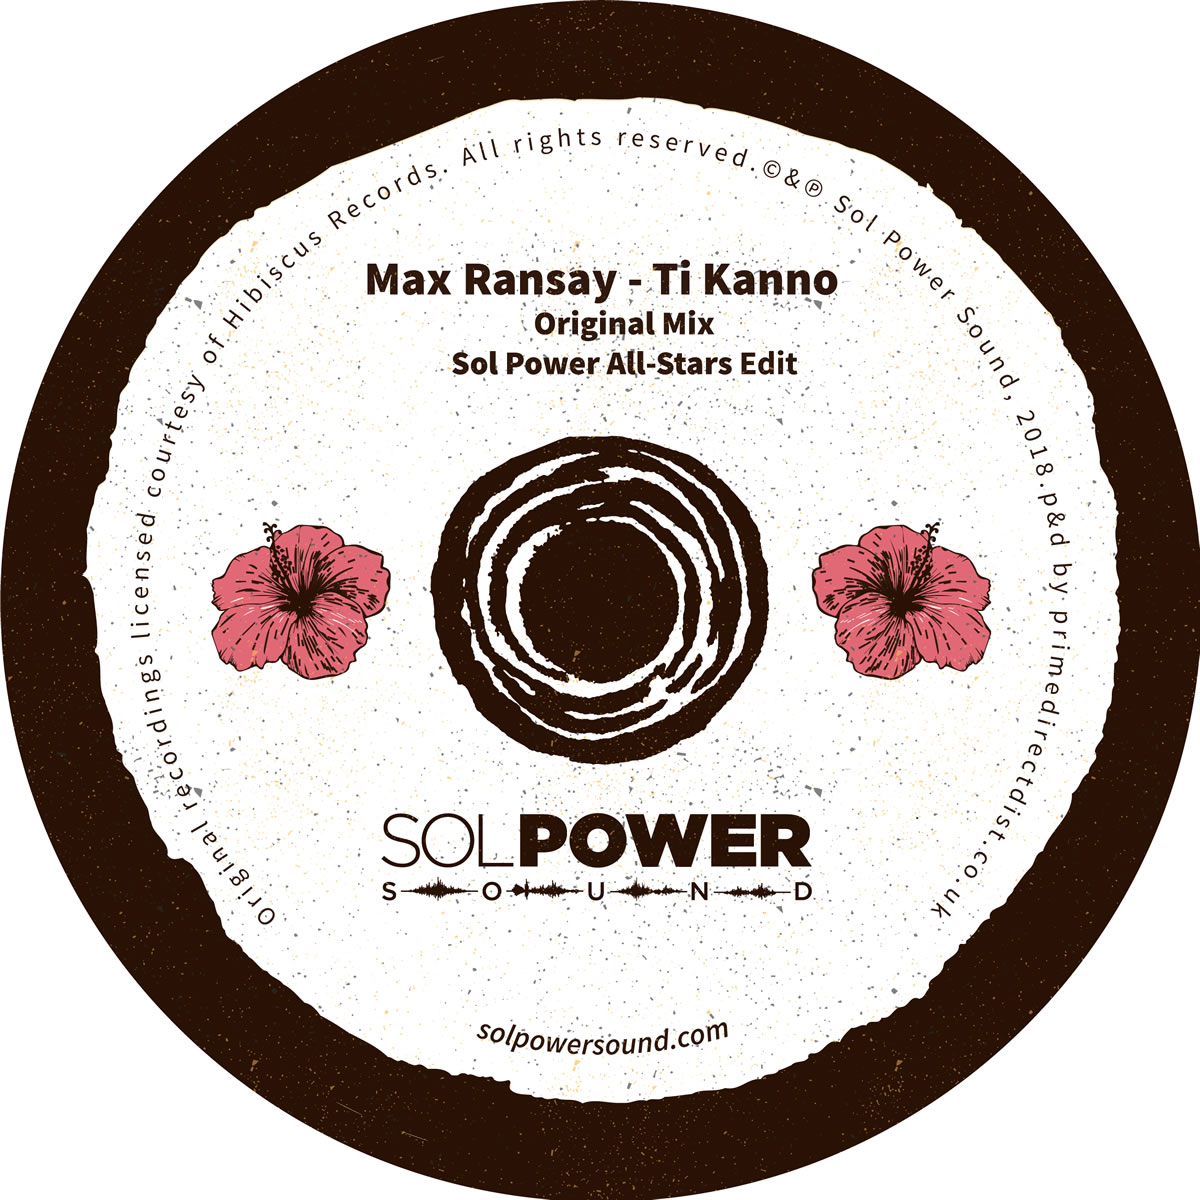 """Song of the Day: Max Ransay """"Ti Kanno"""" (Sol Power All-Stars Edit)"""